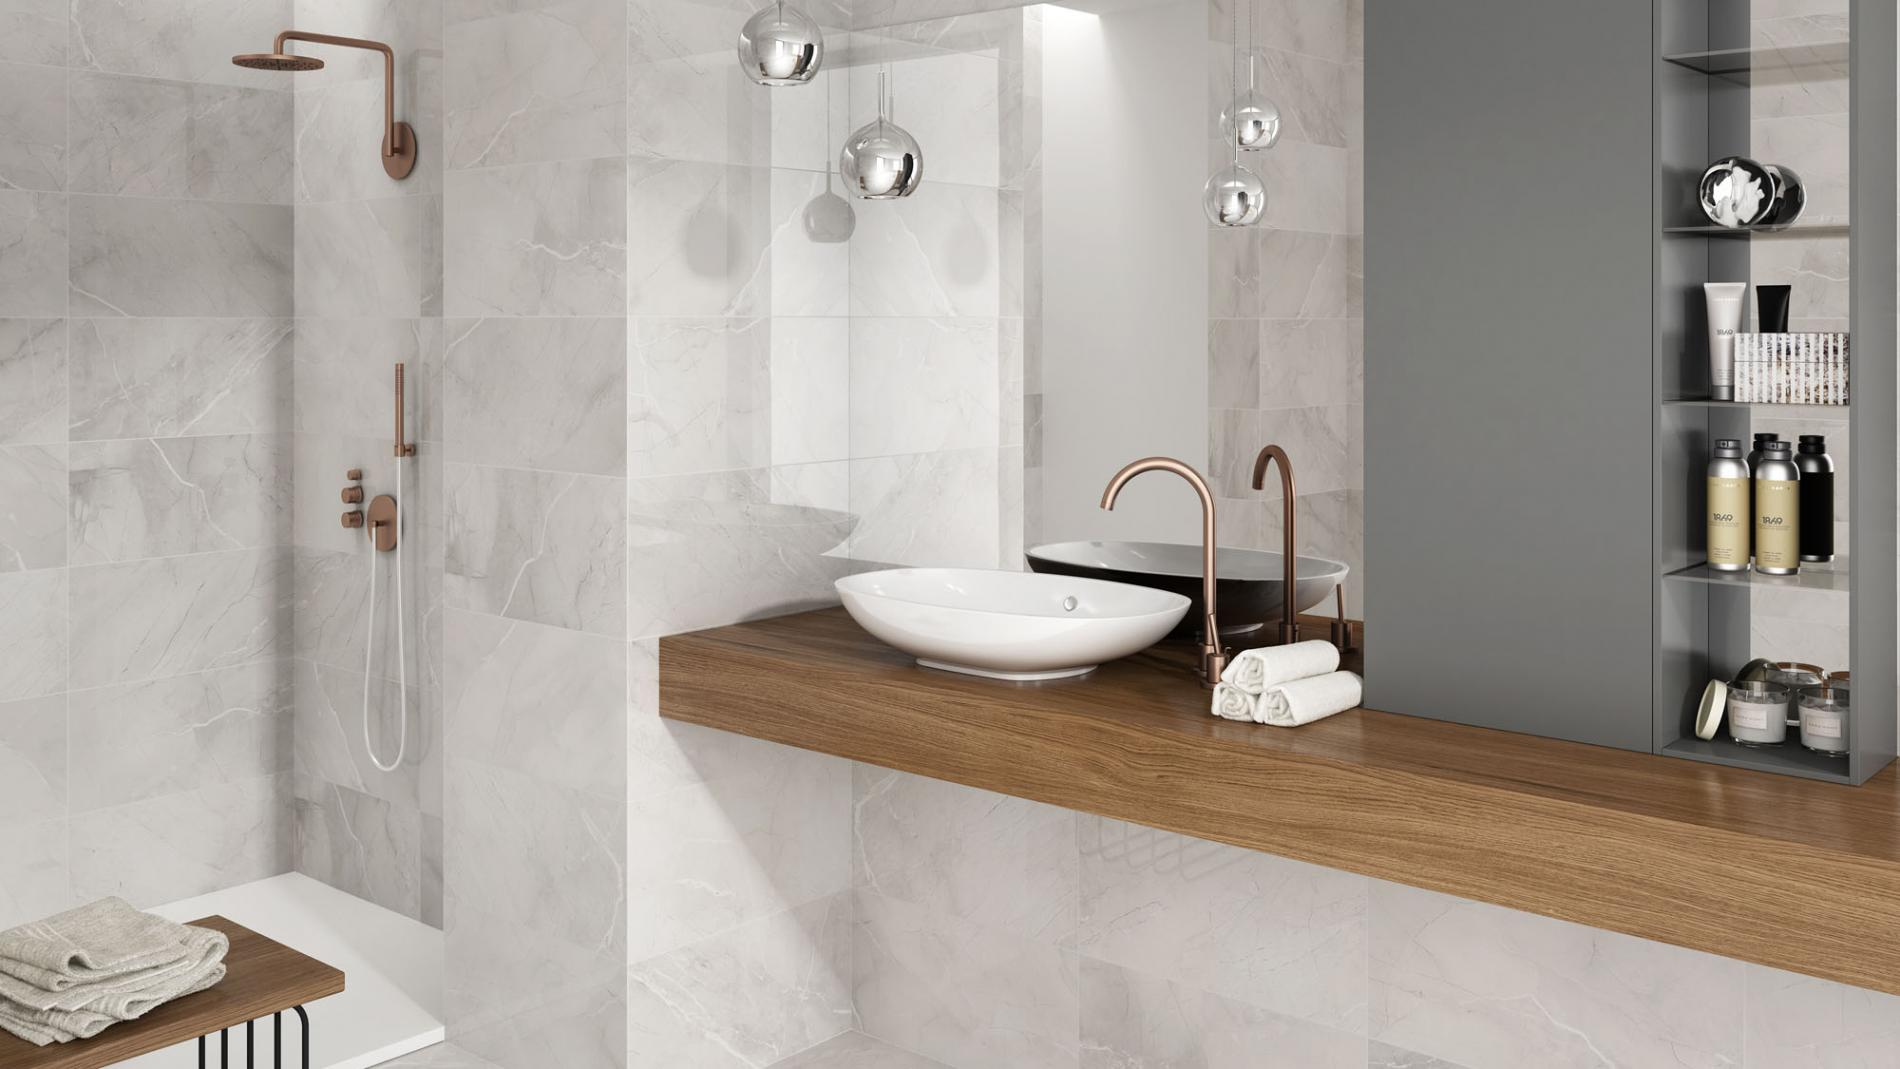 pam1900x169 Tiles dublin waterloo bathrooms commercial contracts ireland supply and fit luxury.jpg